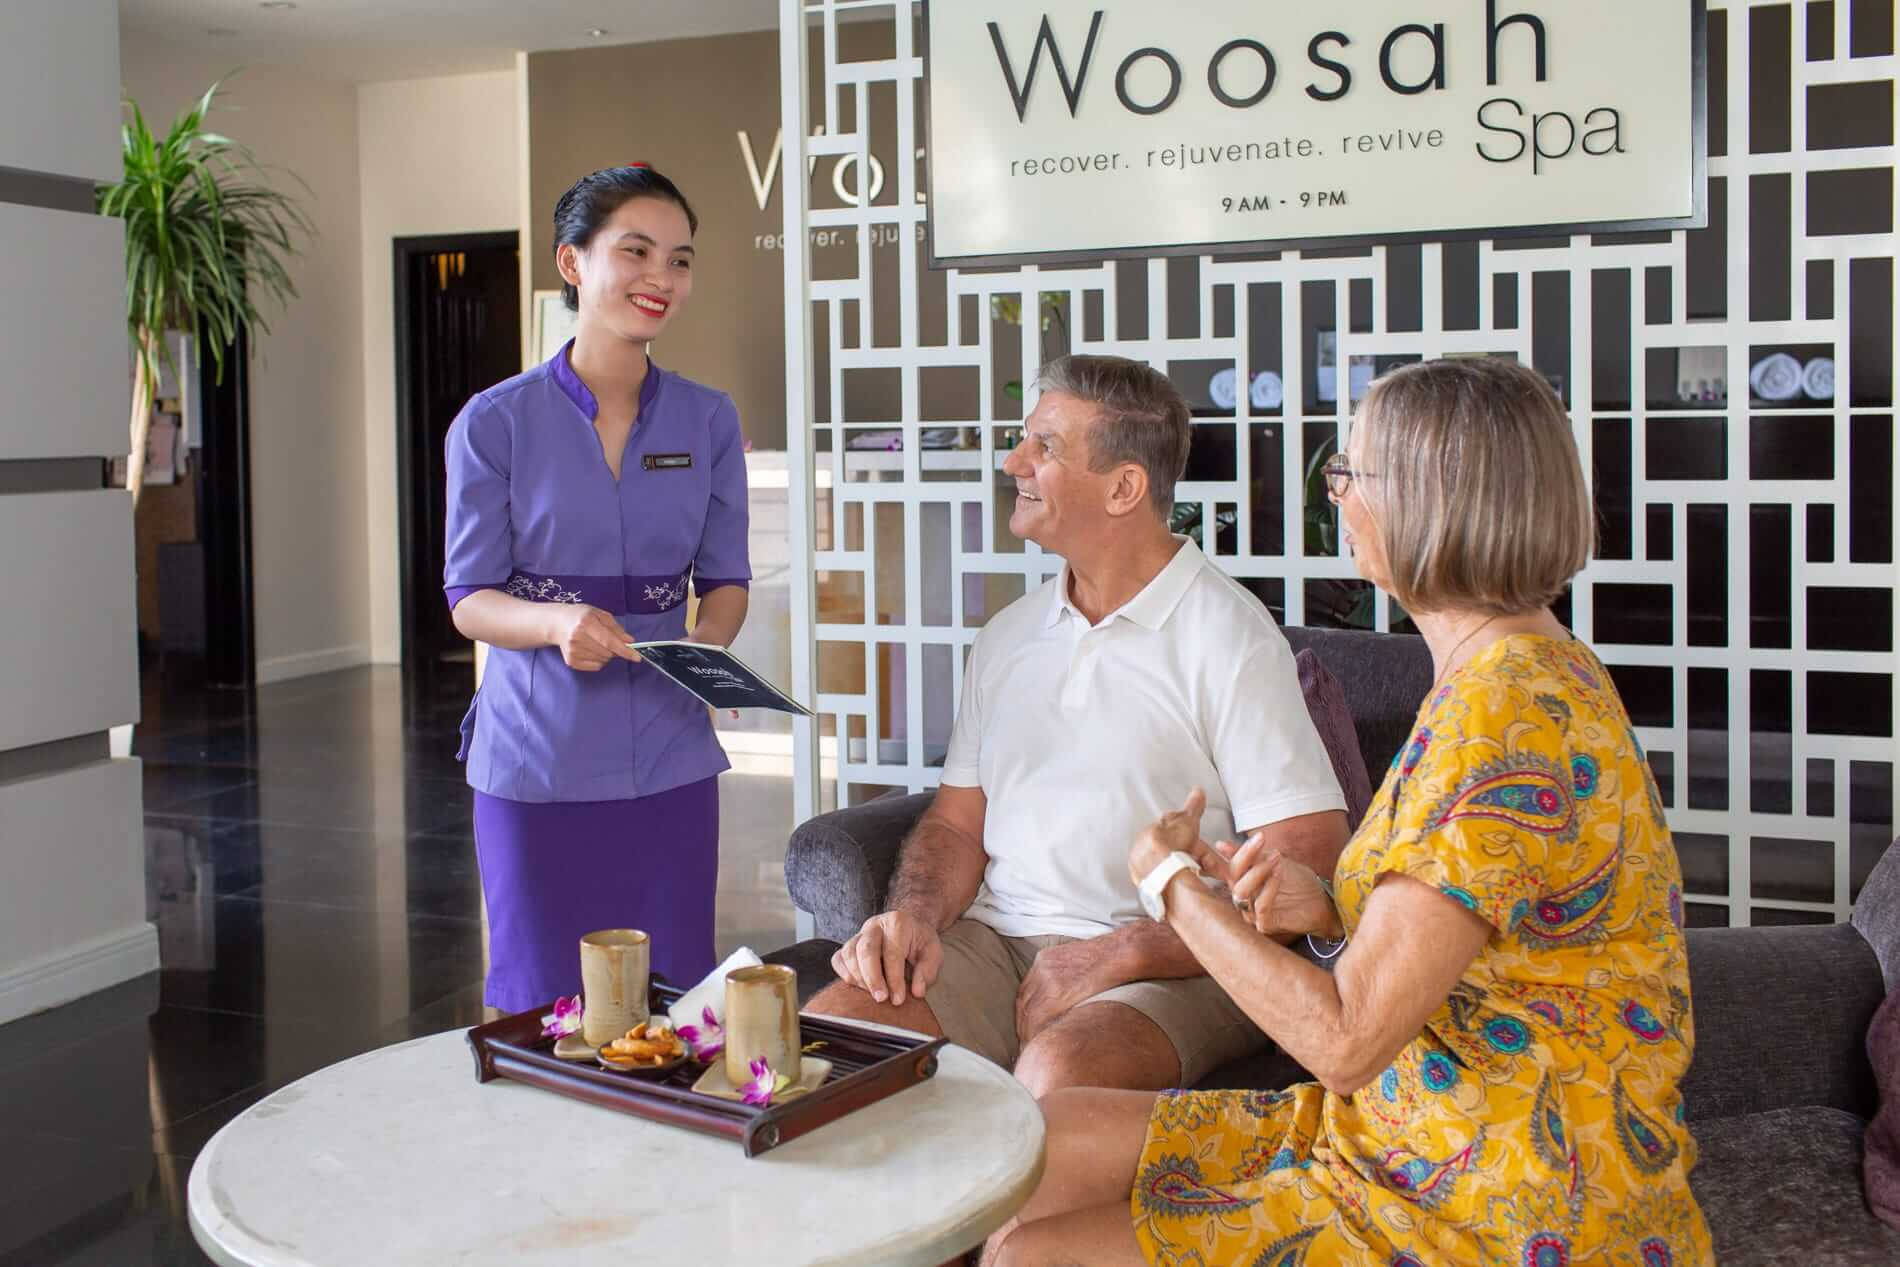 Hospitable attendant at Woosah Spa